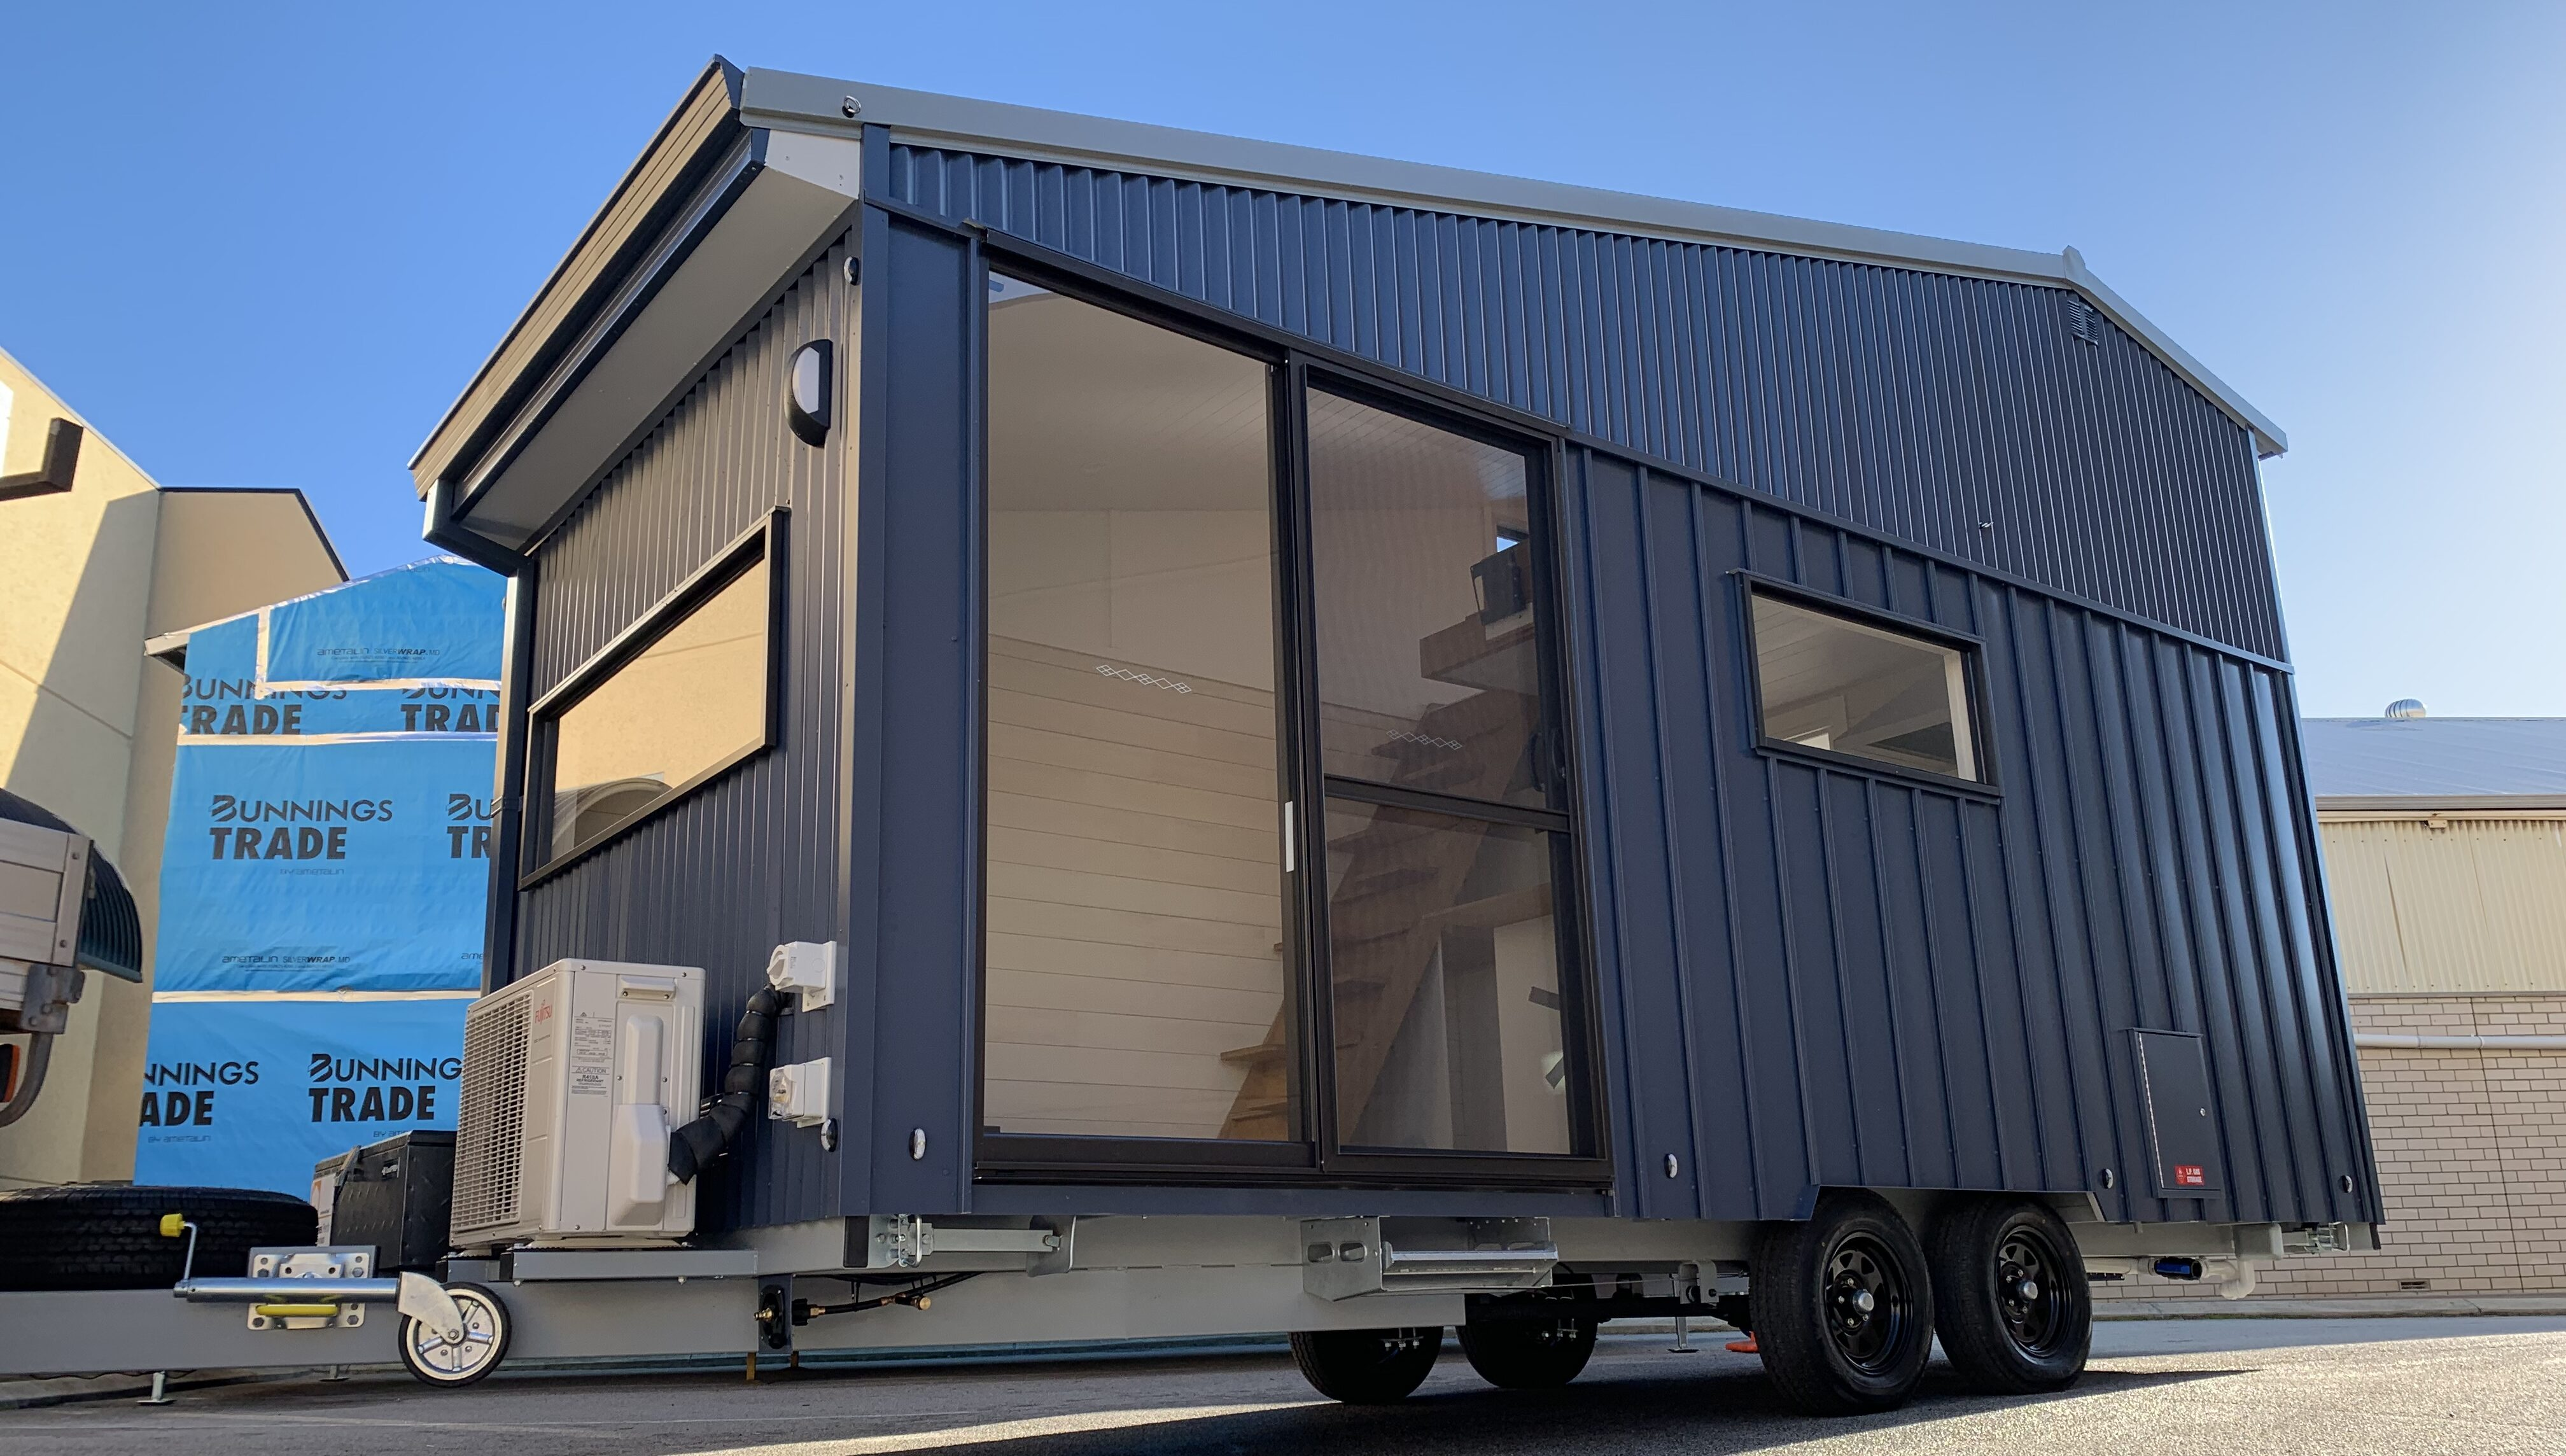 The Adventure Tiny Home Tiny Homes Perth Design